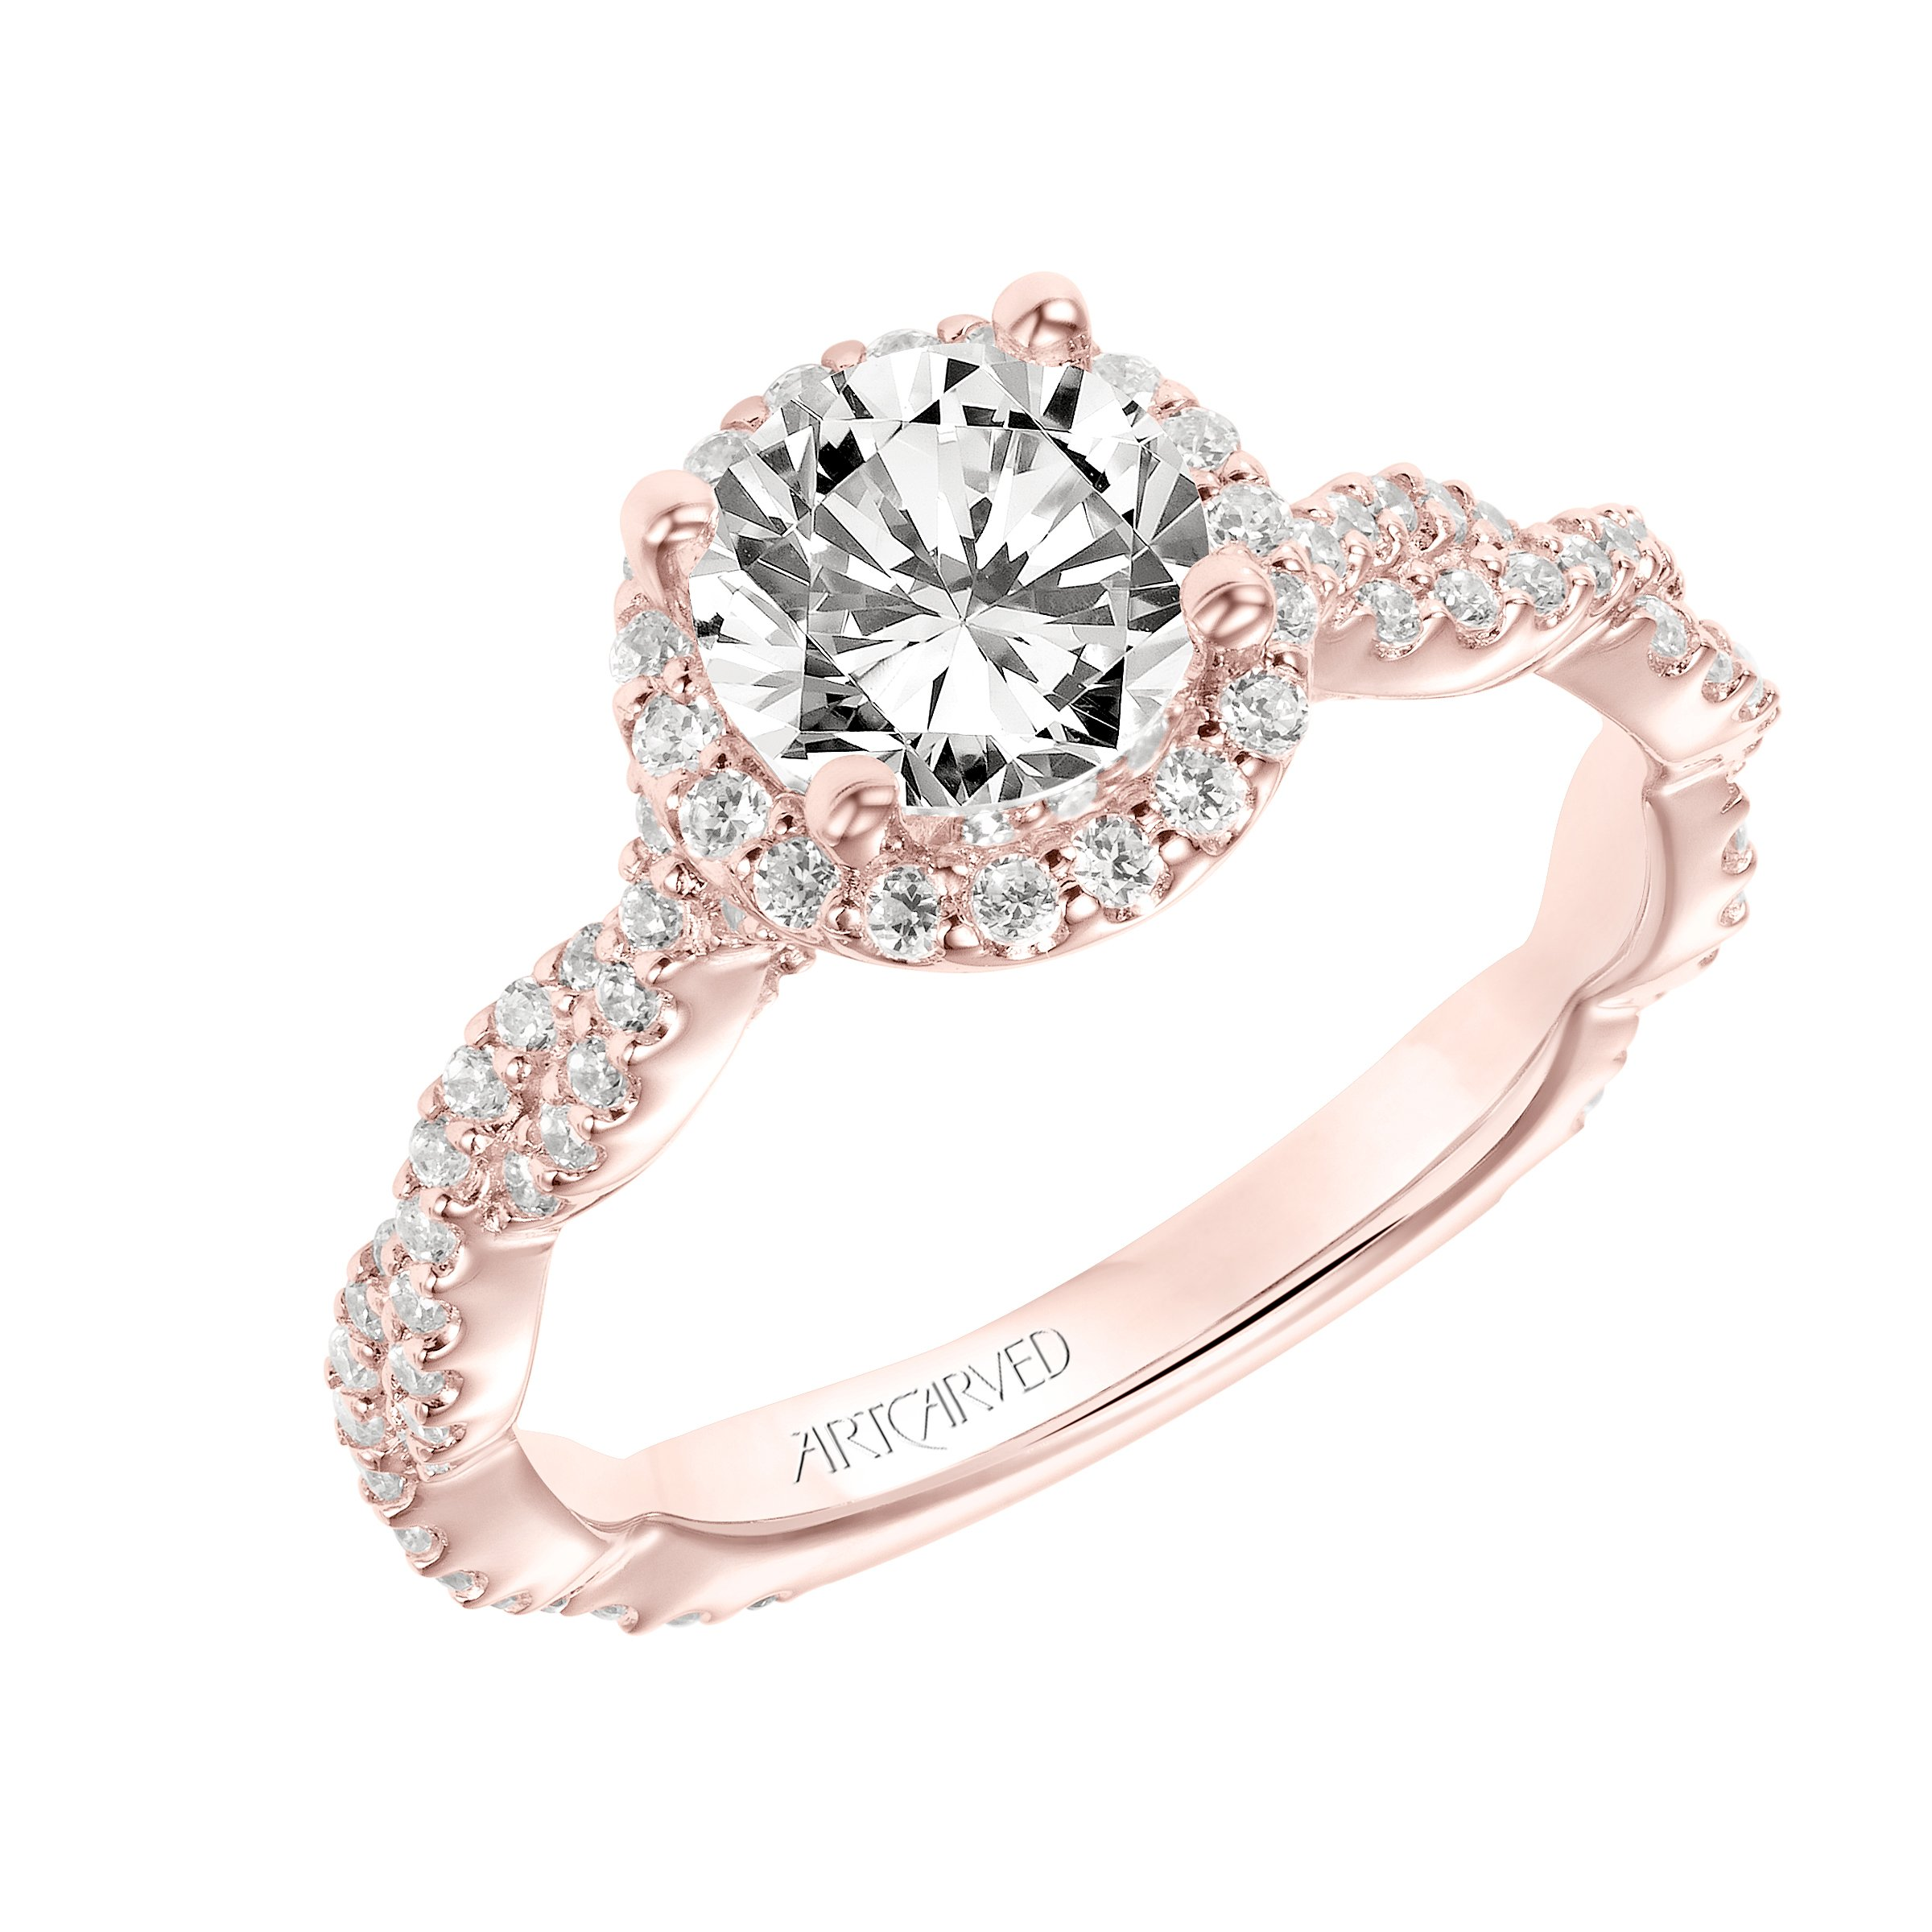 Artcarved Halo Rose Gold Diamond Engagement Ring Designer Engagement Rings Fine Jewelry Arthur S Jewelers